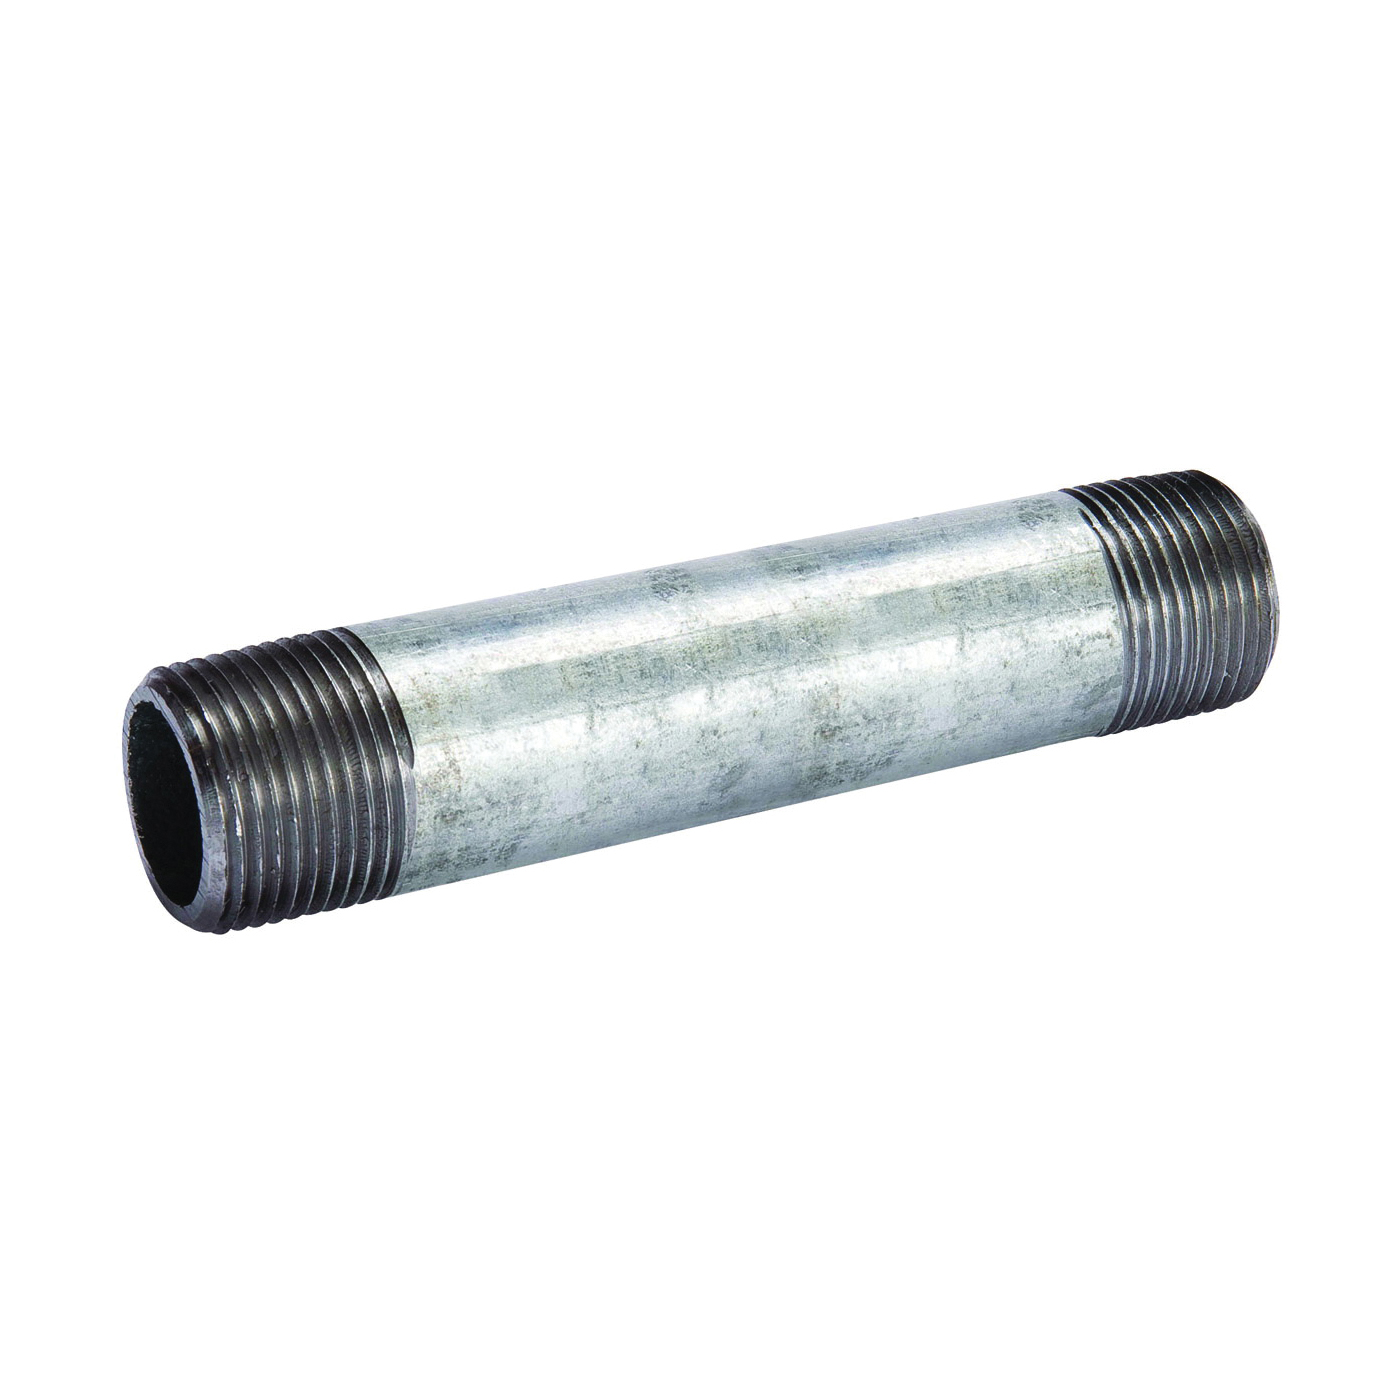 Picture of B & K 571-050BC Pipe Nipple, 4 in, Threaded, Galvanized Steel, SCH 40 Schedule, 5 in L